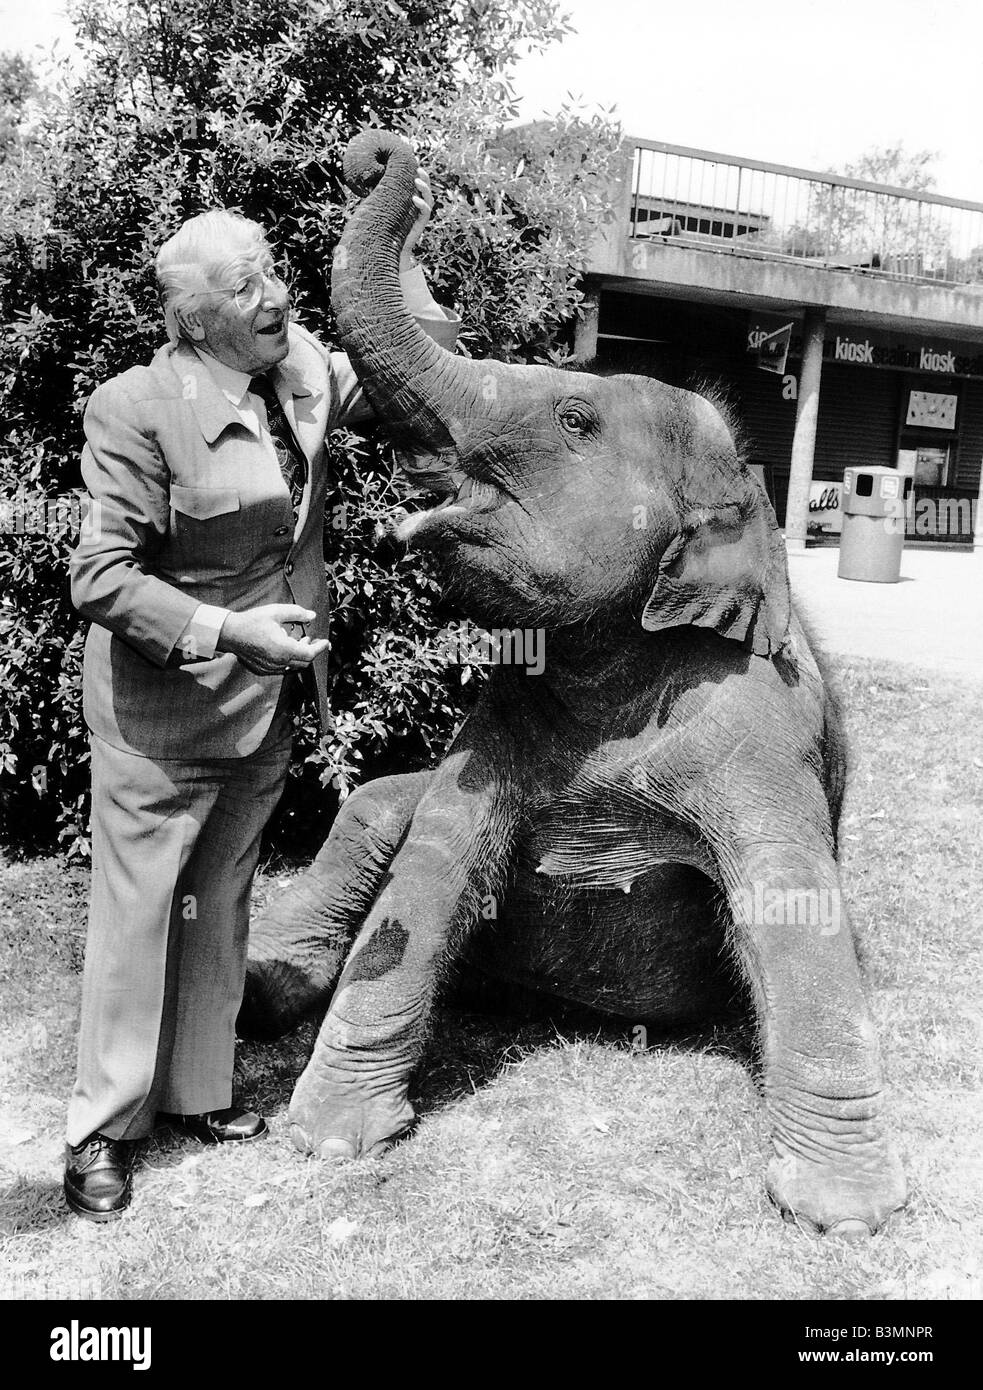 Johnny Morris TV Presenter of Animal Programmes with Layang the Elephant at an Animal Park - Stock Image